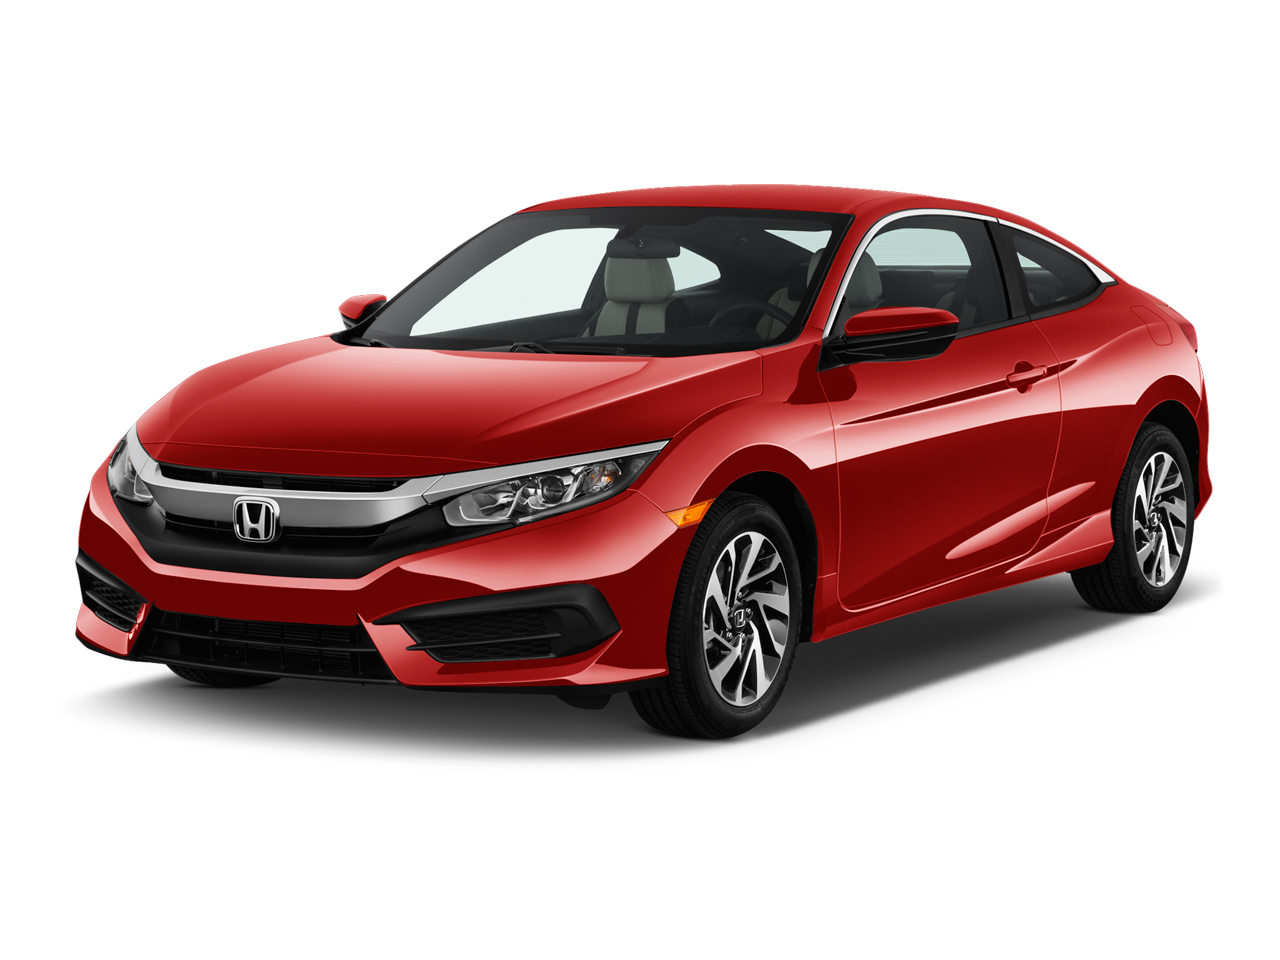 new 2017 honda civic lx p near san marcos tx honda of san marcos. Black Bedroom Furniture Sets. Home Design Ideas